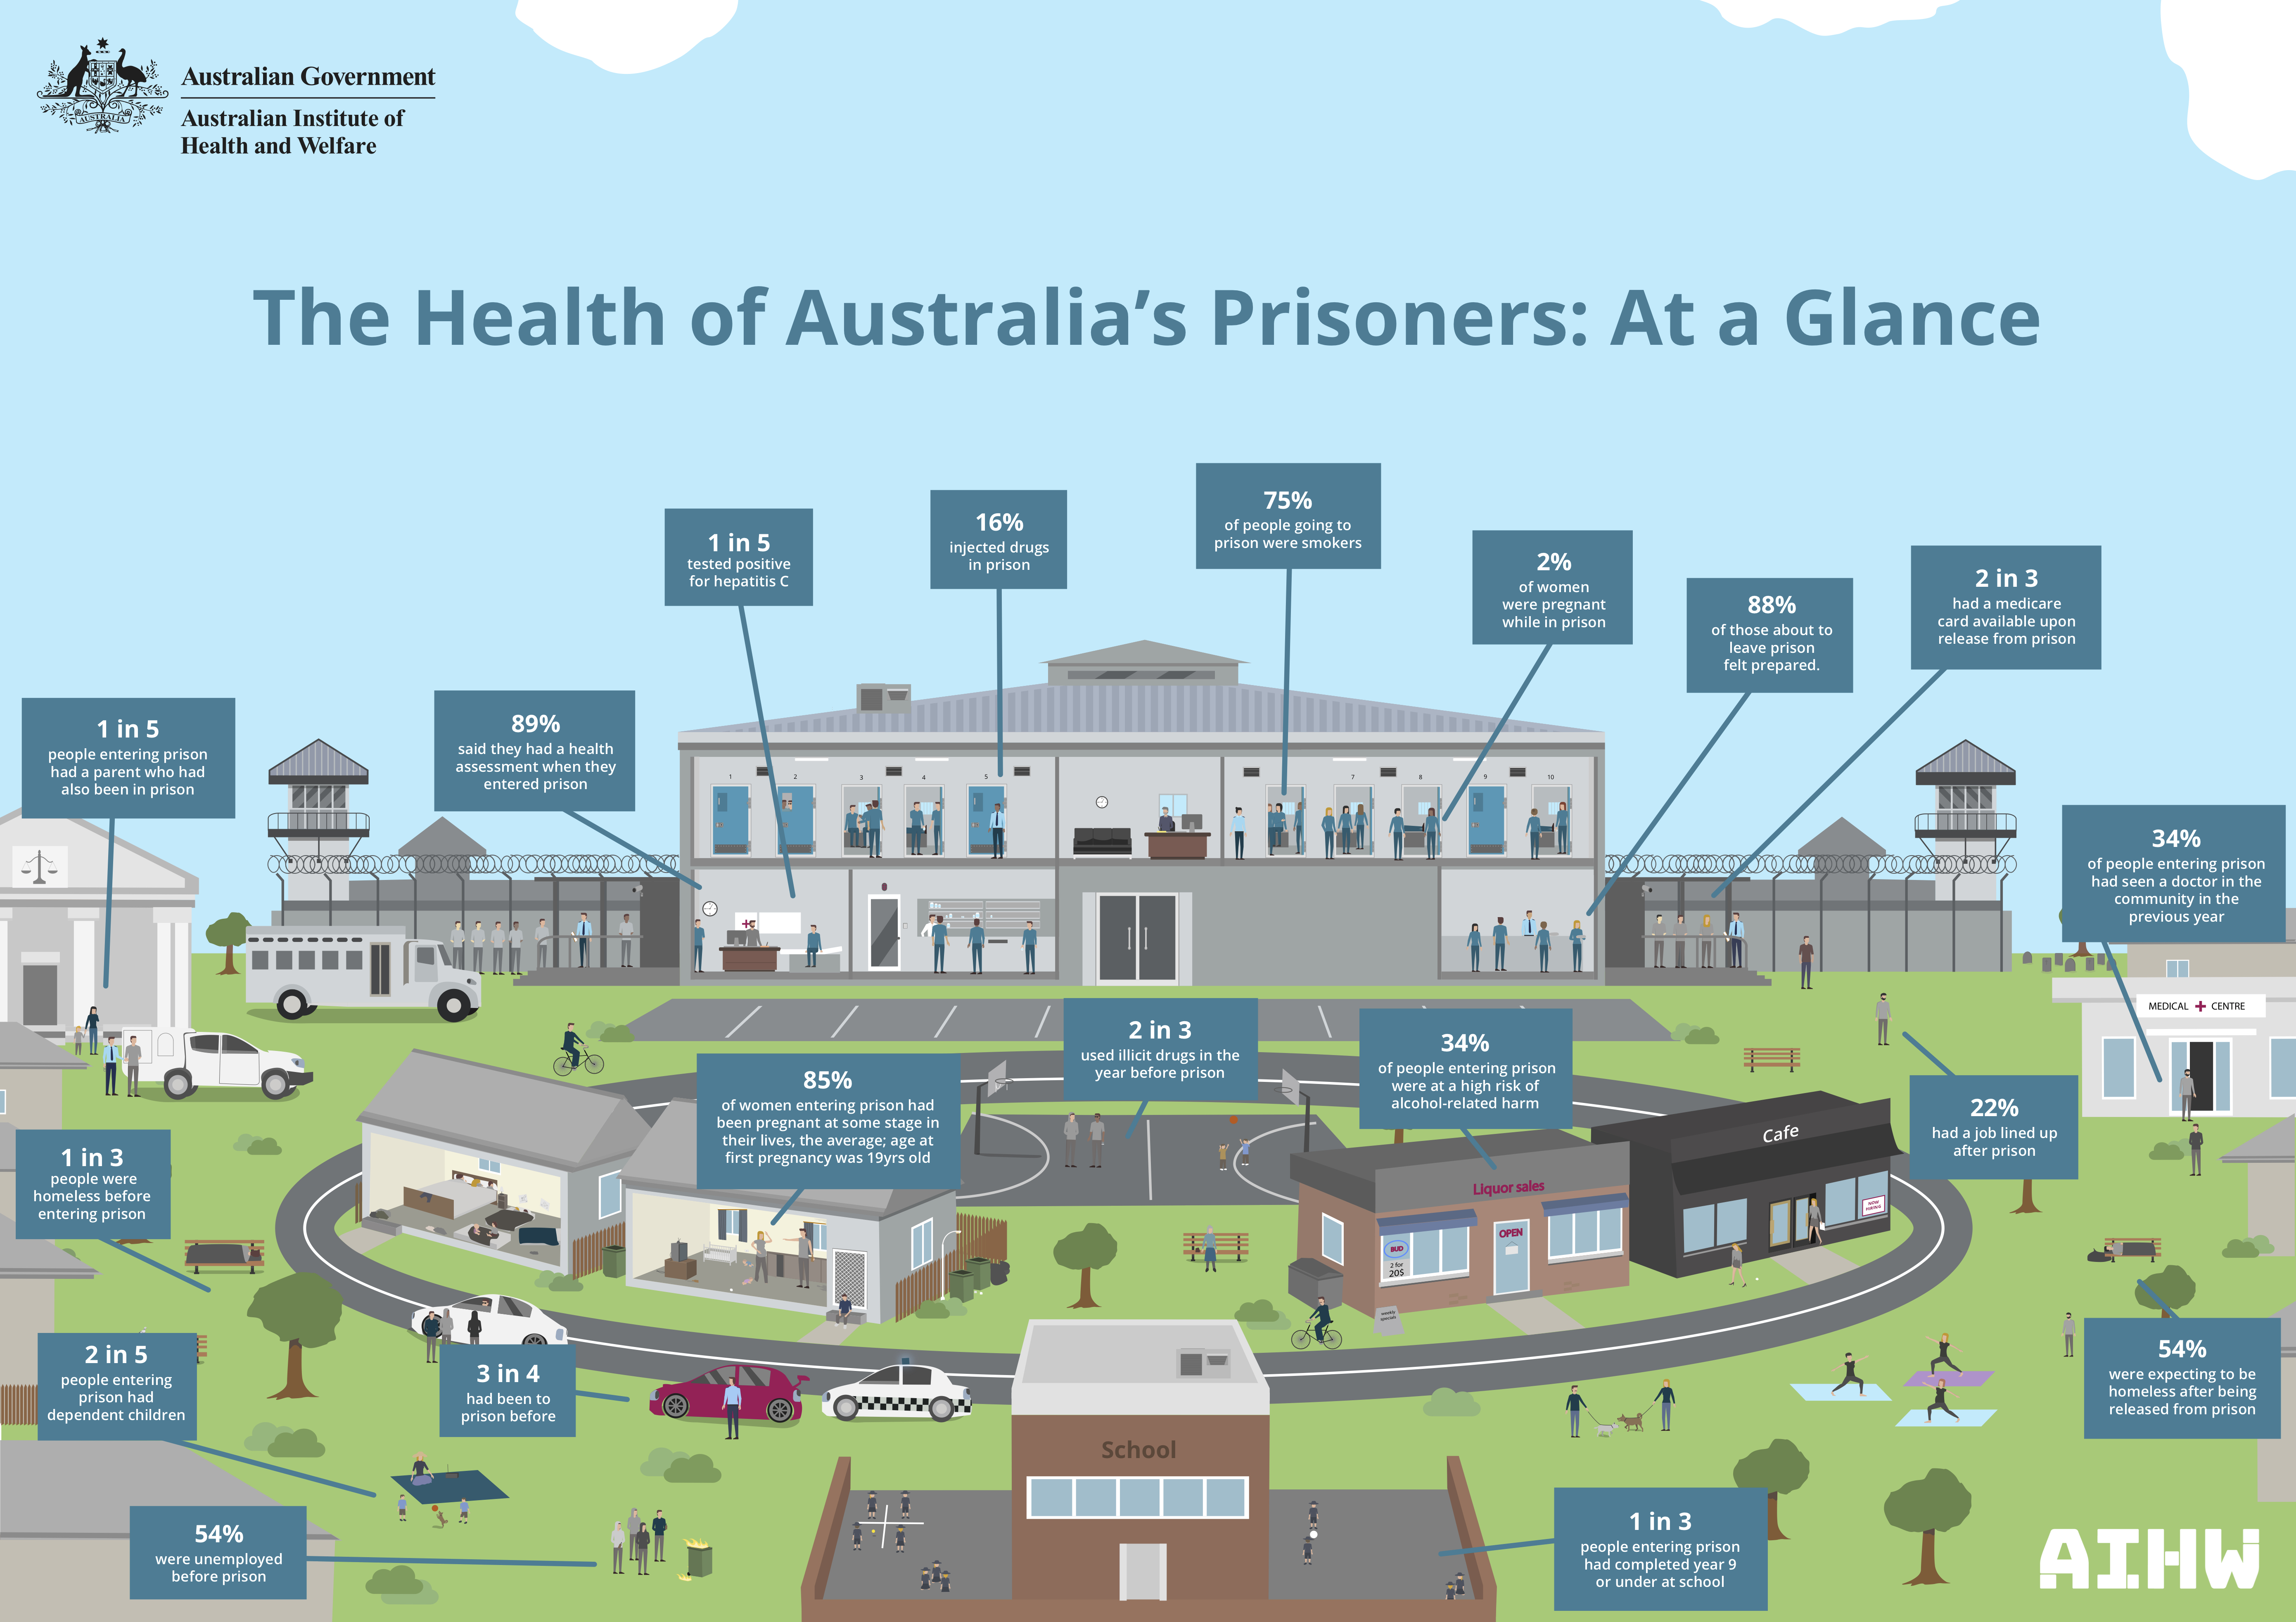 At a time of pandemic threat, where is the national leadership on prisons?